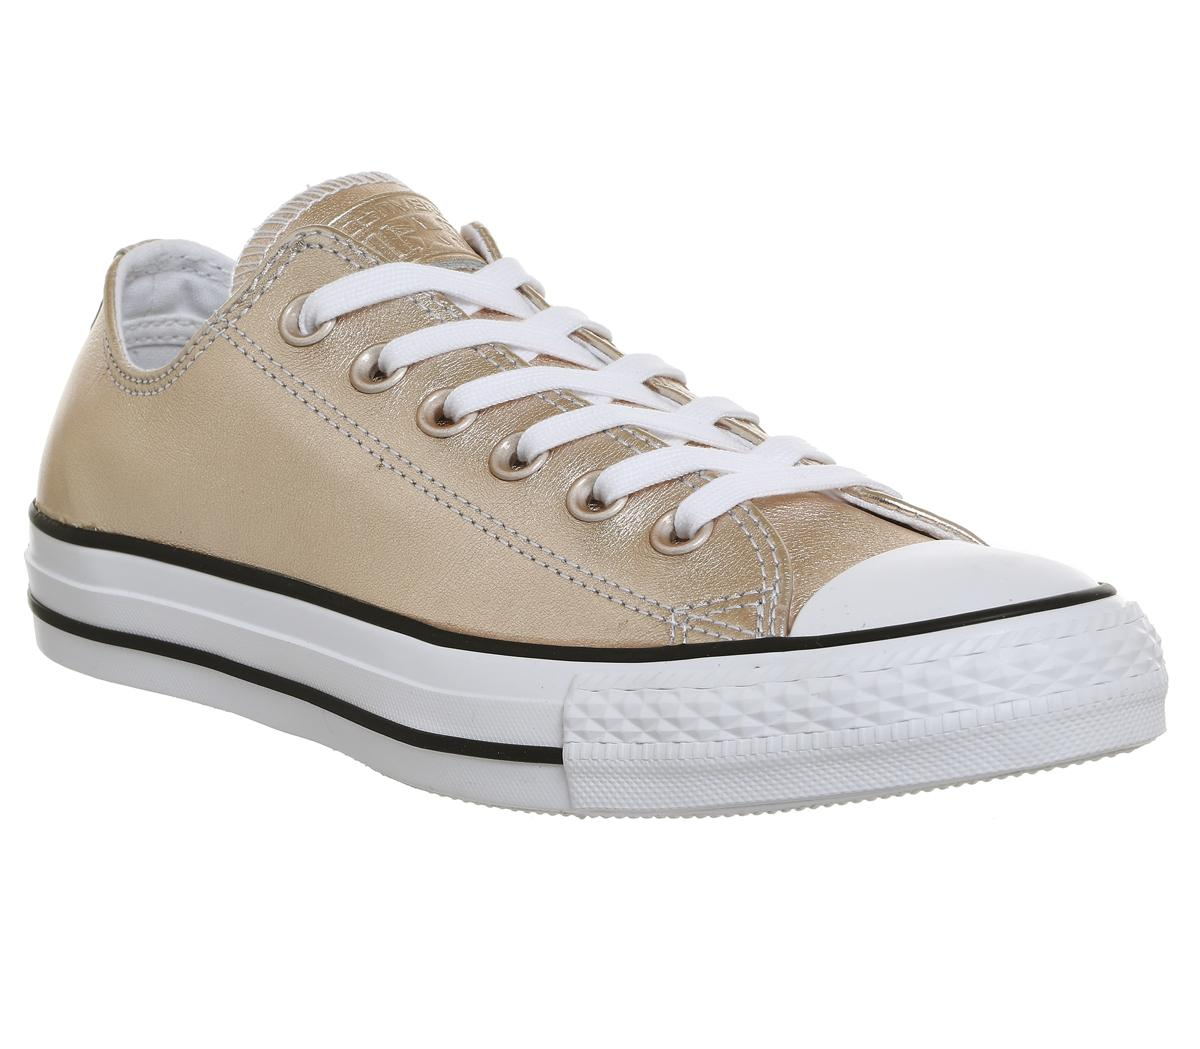 1f6f6ca13c96 Converse All Star Low Leather Trainers Blush Gold - Hers trainers